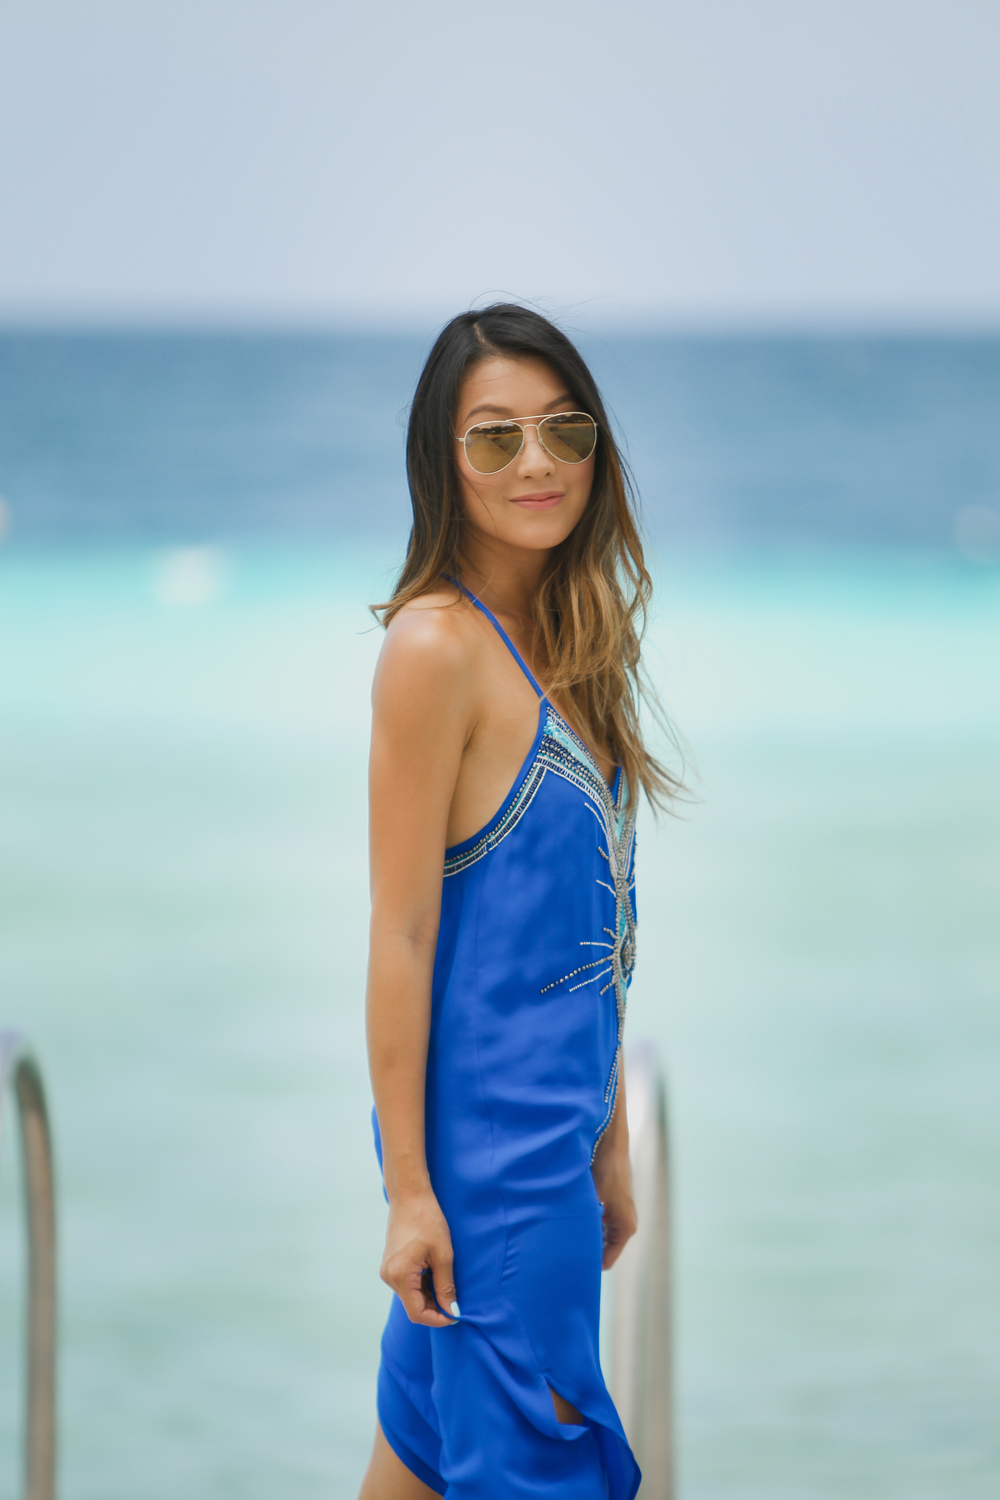 hautehippie_bluedress_beach1.jpg